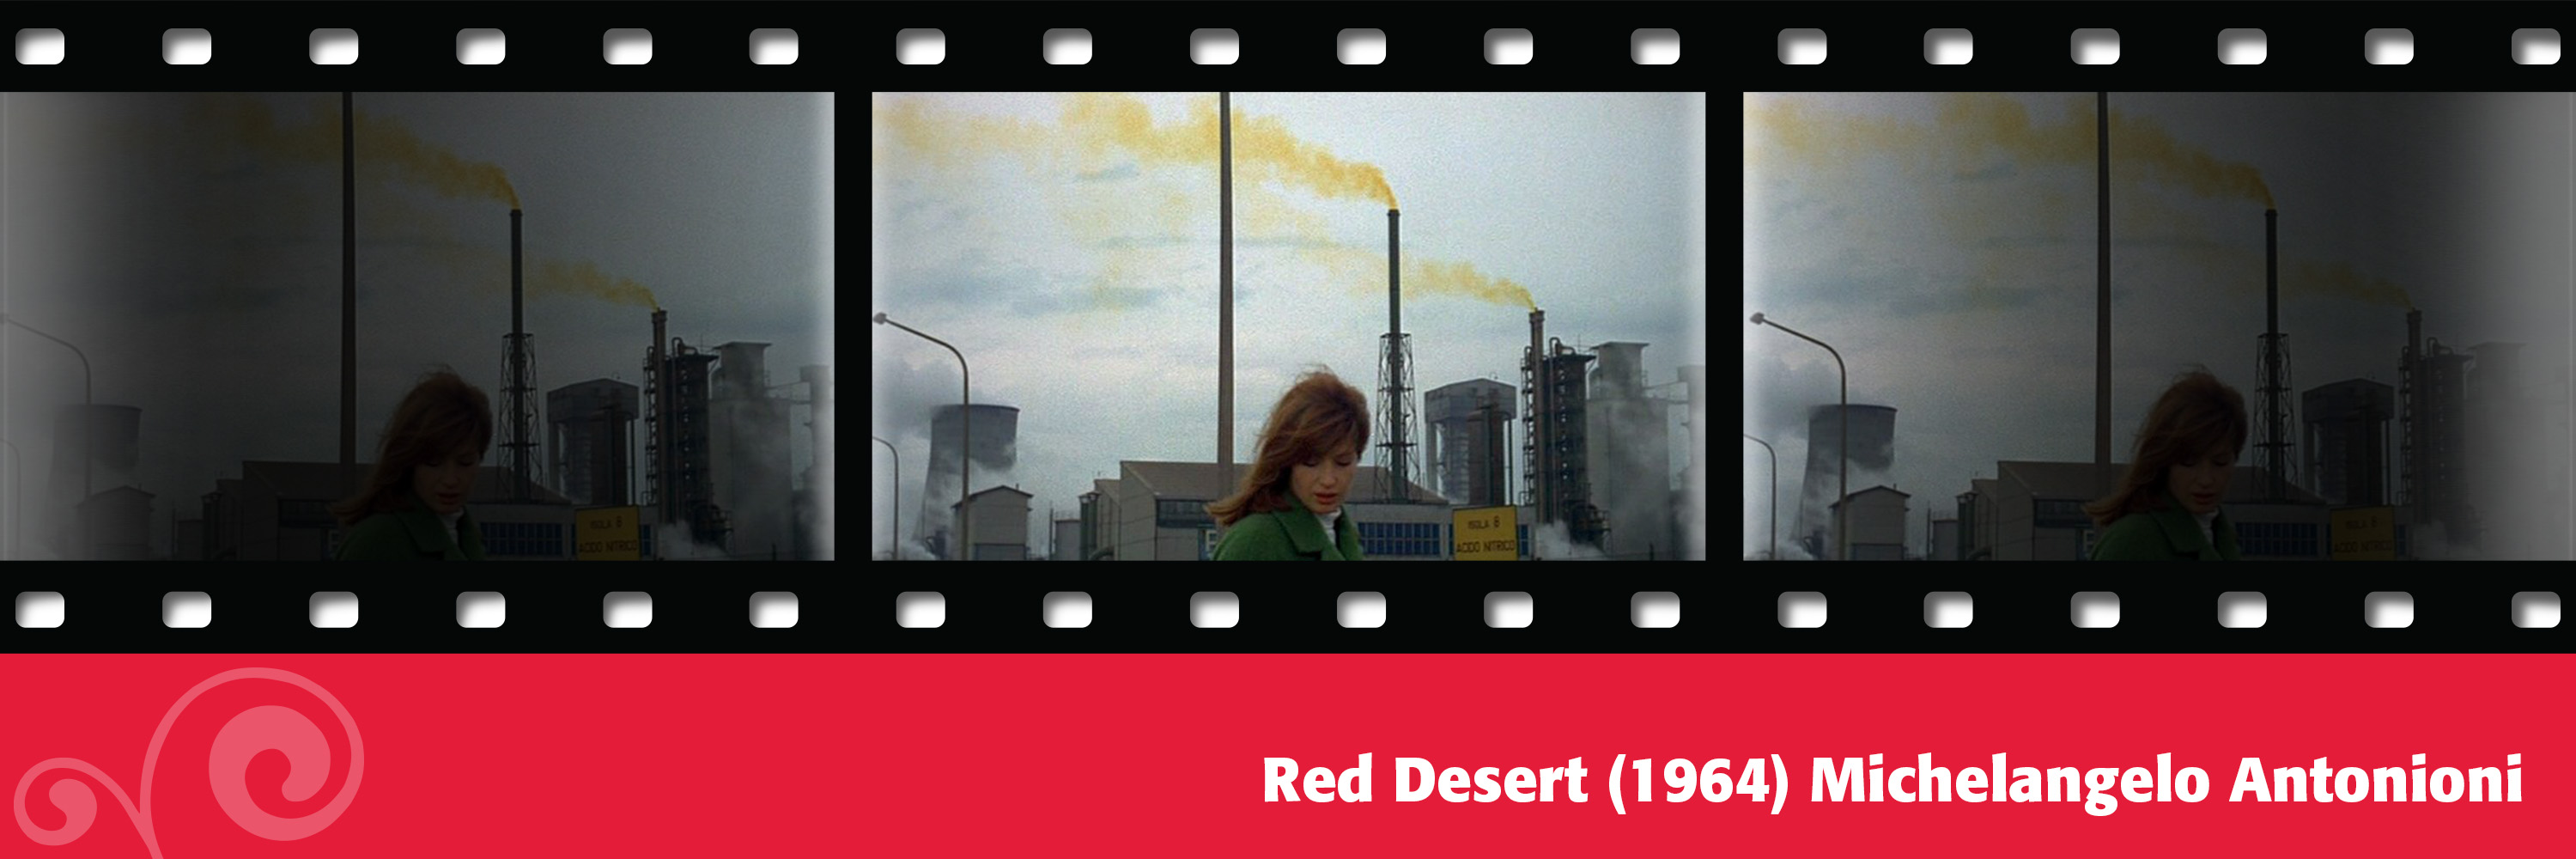 Red Desert (1964) Michelangelo Antonioni